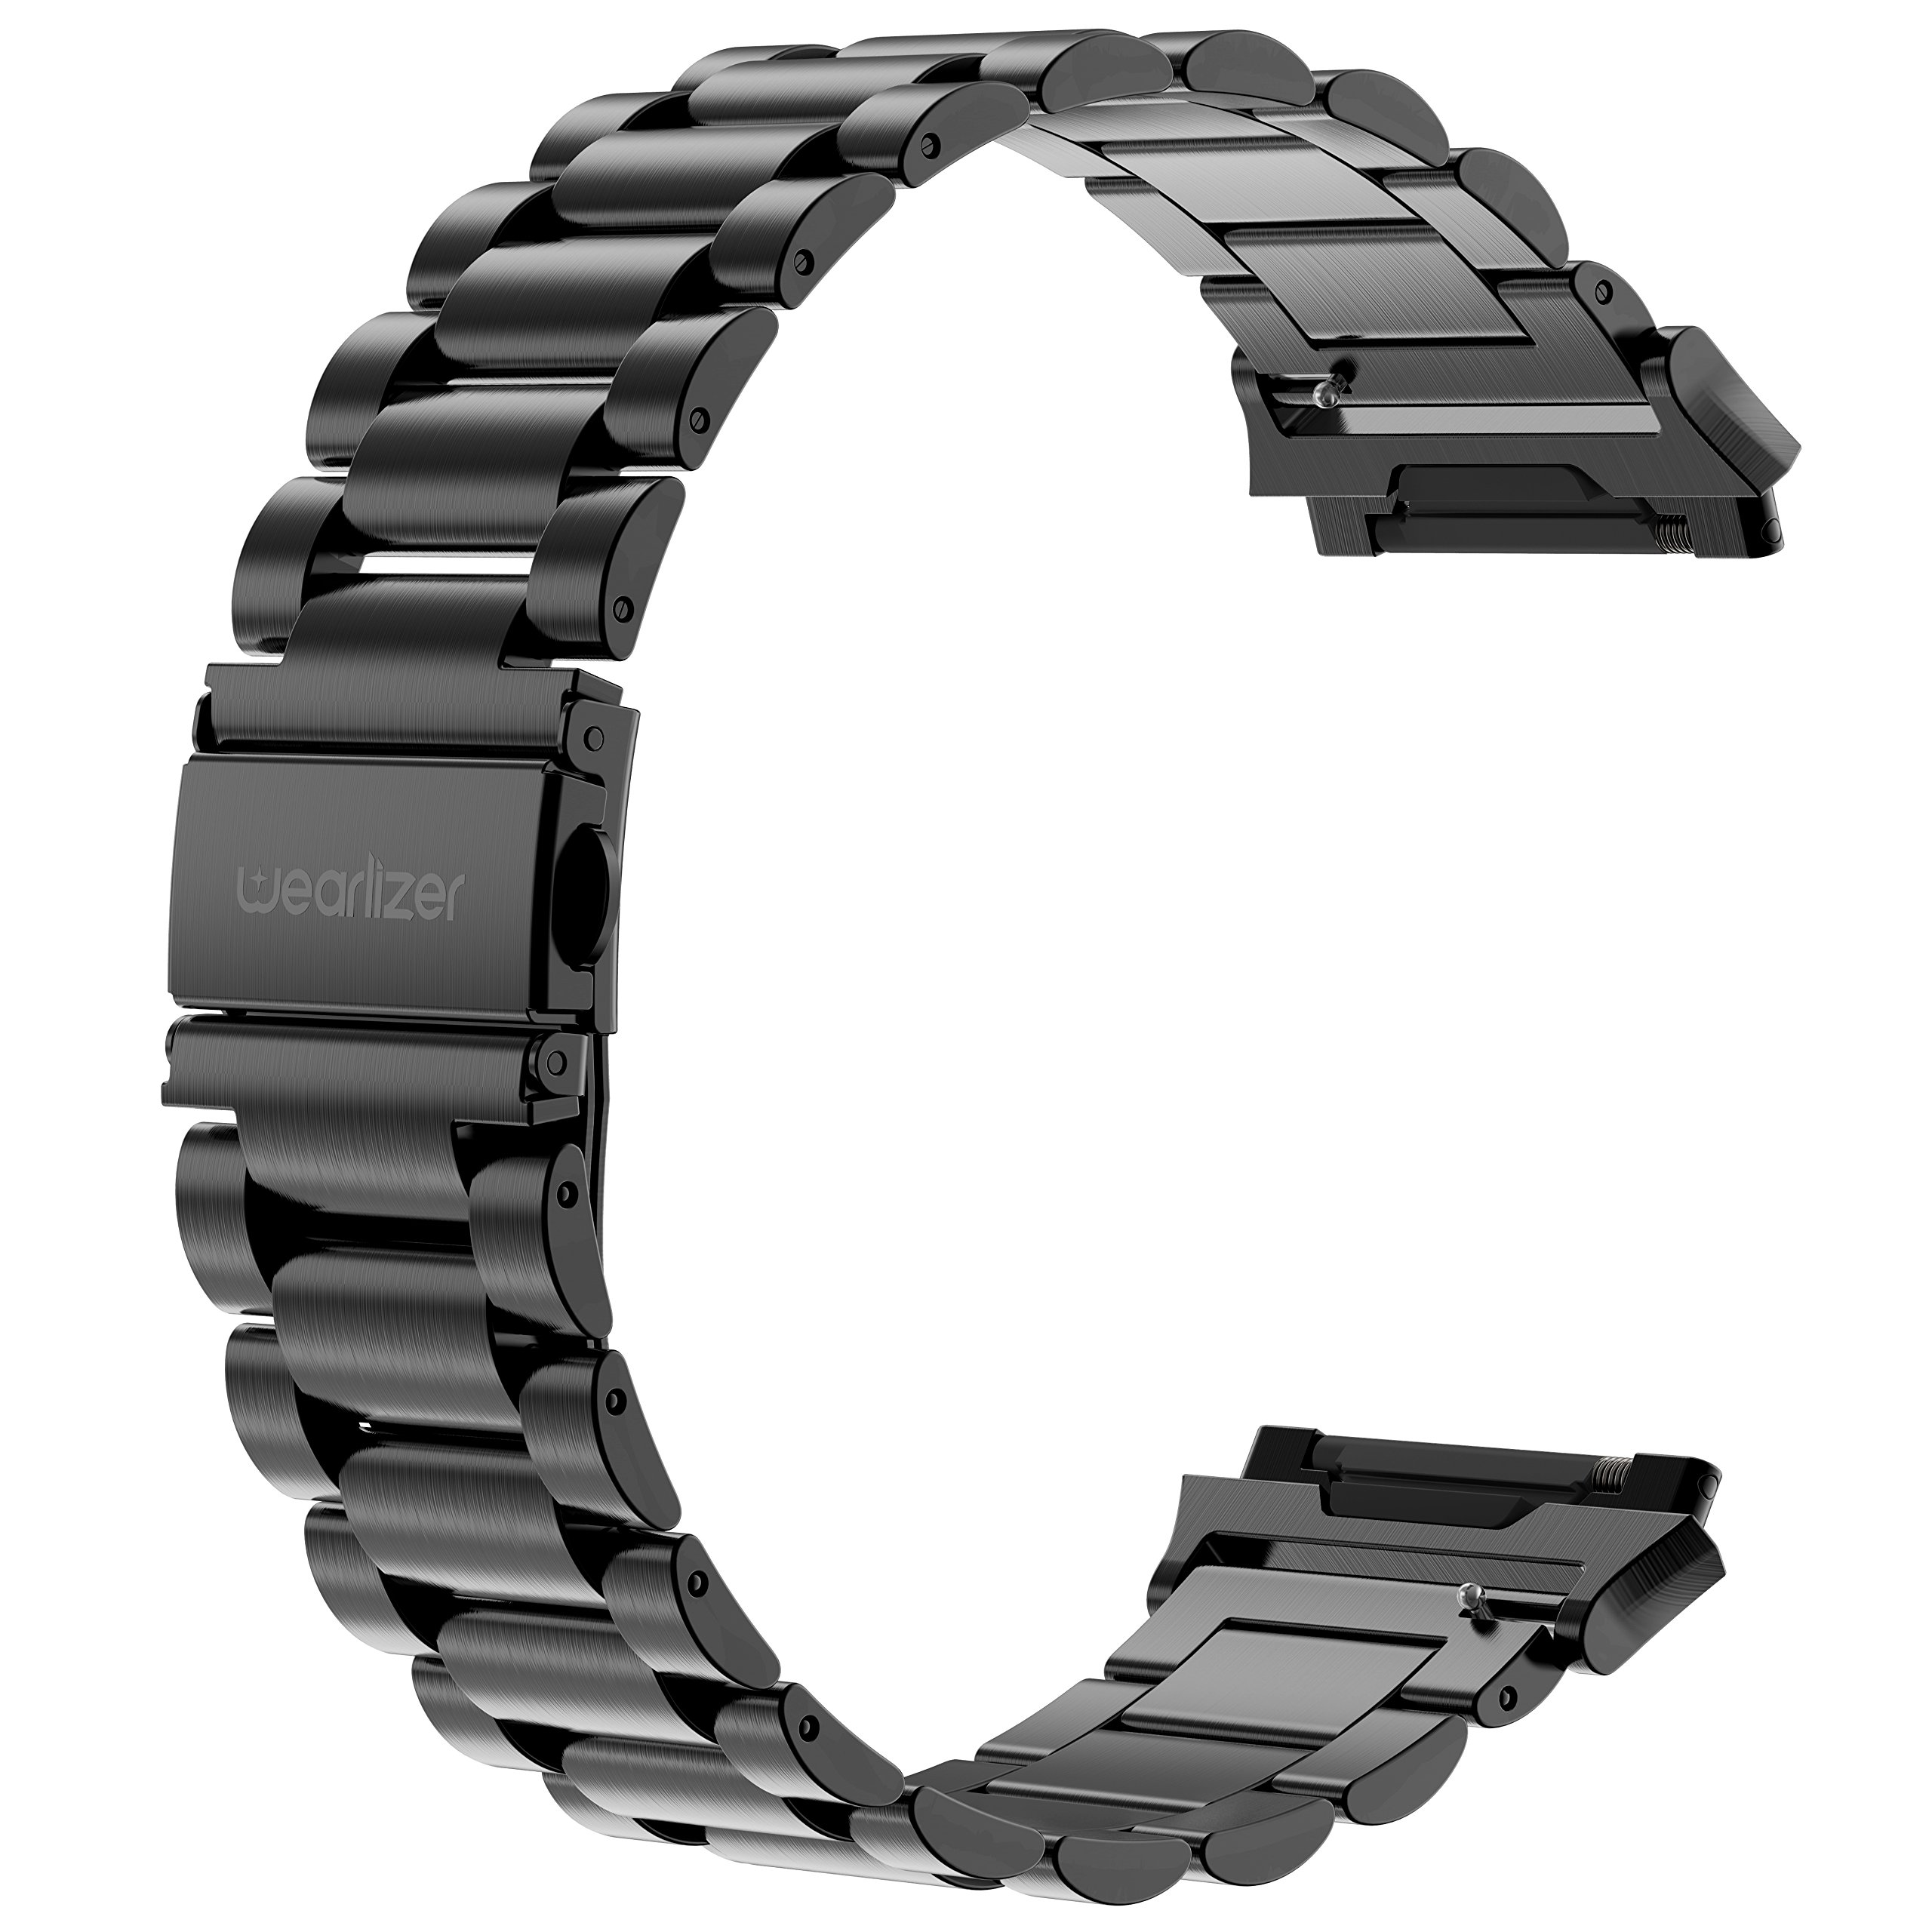 For Fitbit Ionic Bands, Wearlizer Metal Links Band Replacement for Ionic, Lux Accessories Stainless Steel Bracelet Strap with Folding Clasp for Fitbit Ionic Smartwatch - Black